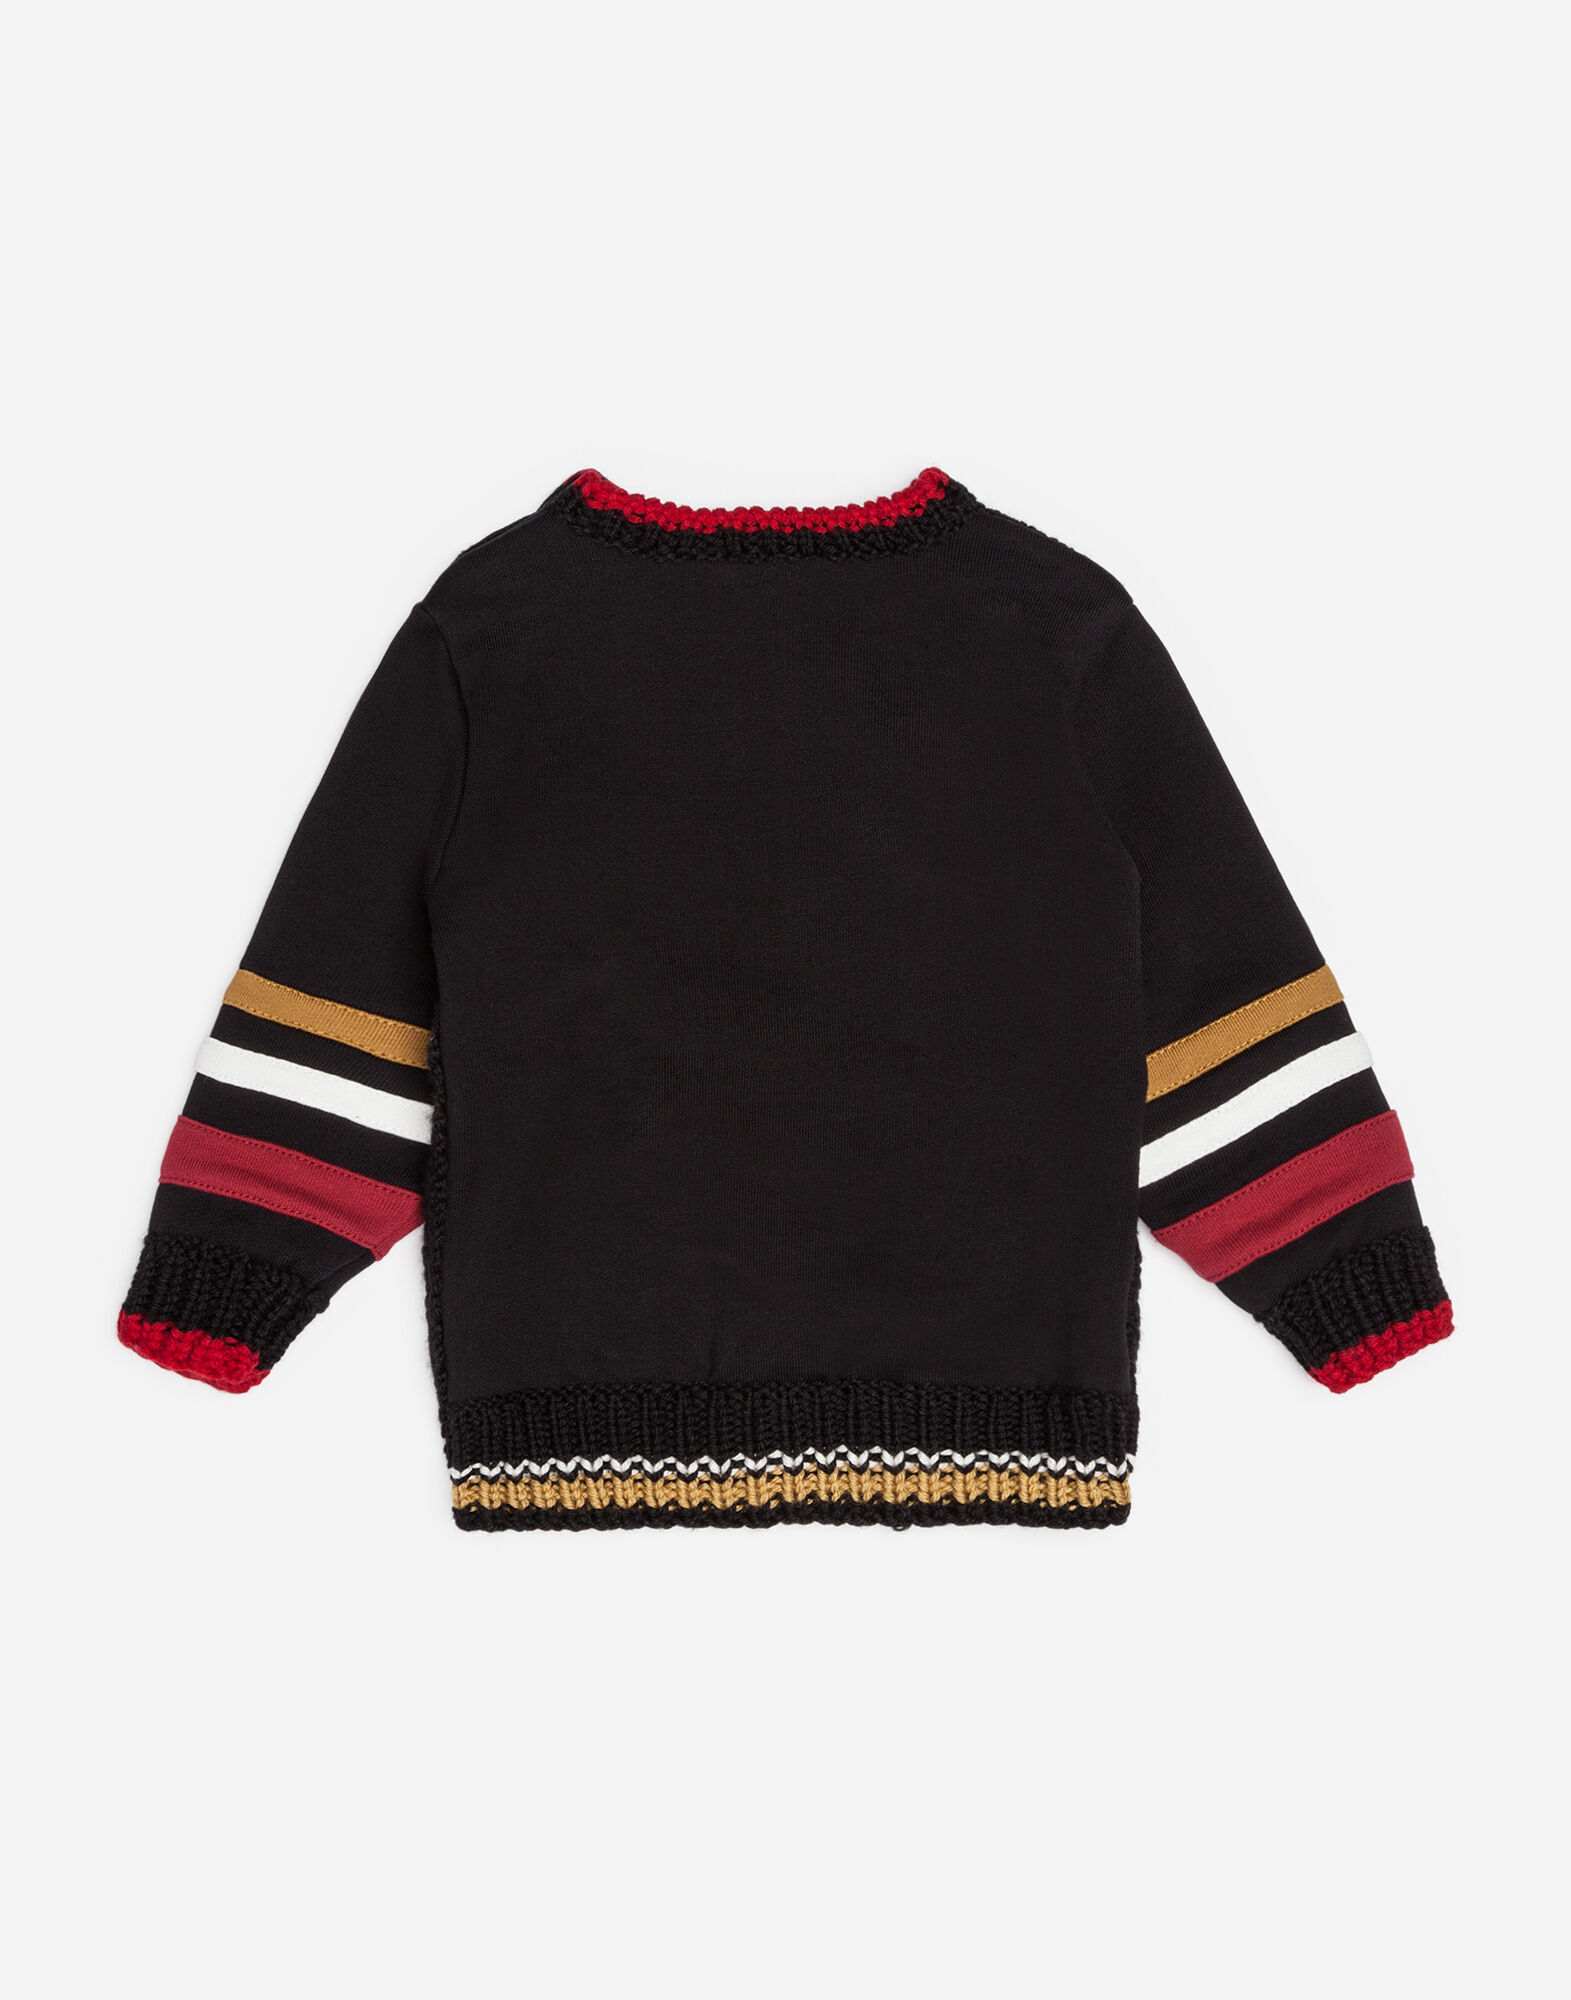 MIXED MATERIAL SWEATSHIRT WITH EMBROIDERY